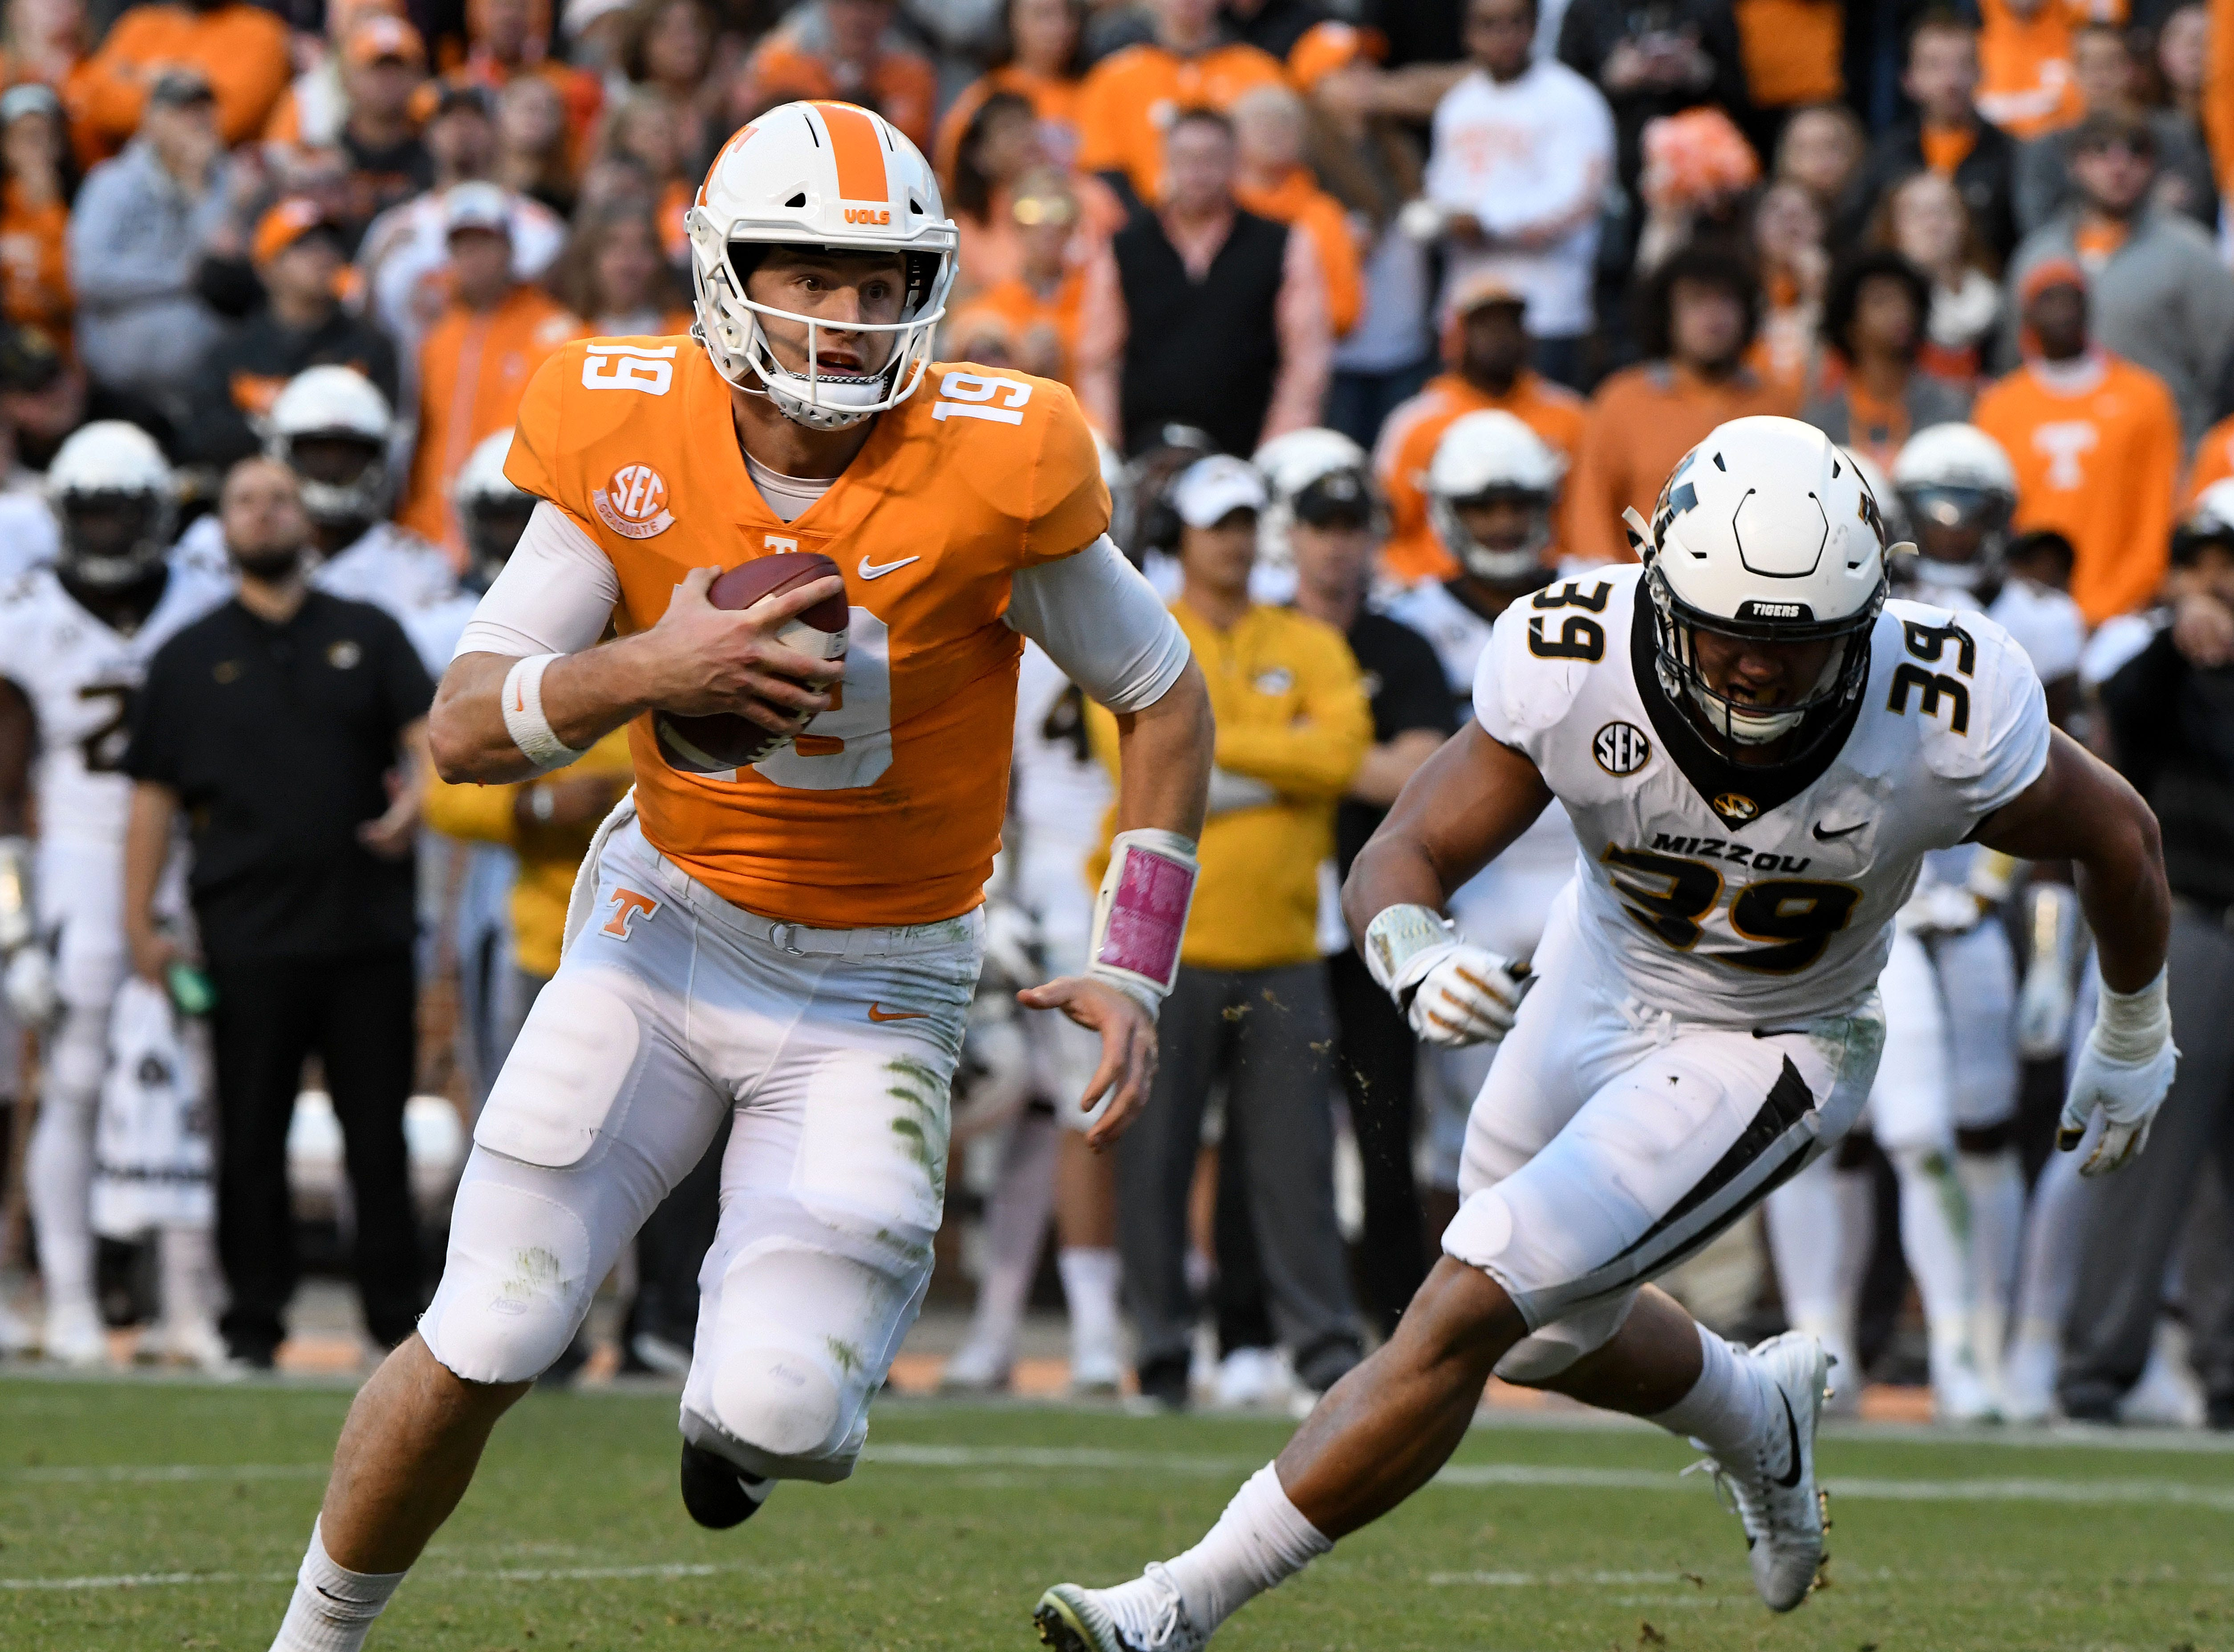 Tennessee quarterback Keller Chryst (19) during first half action against Missouri Saturday, Nov. 17, 2018 at Neyland Stadium in Knoxville, Tenn.